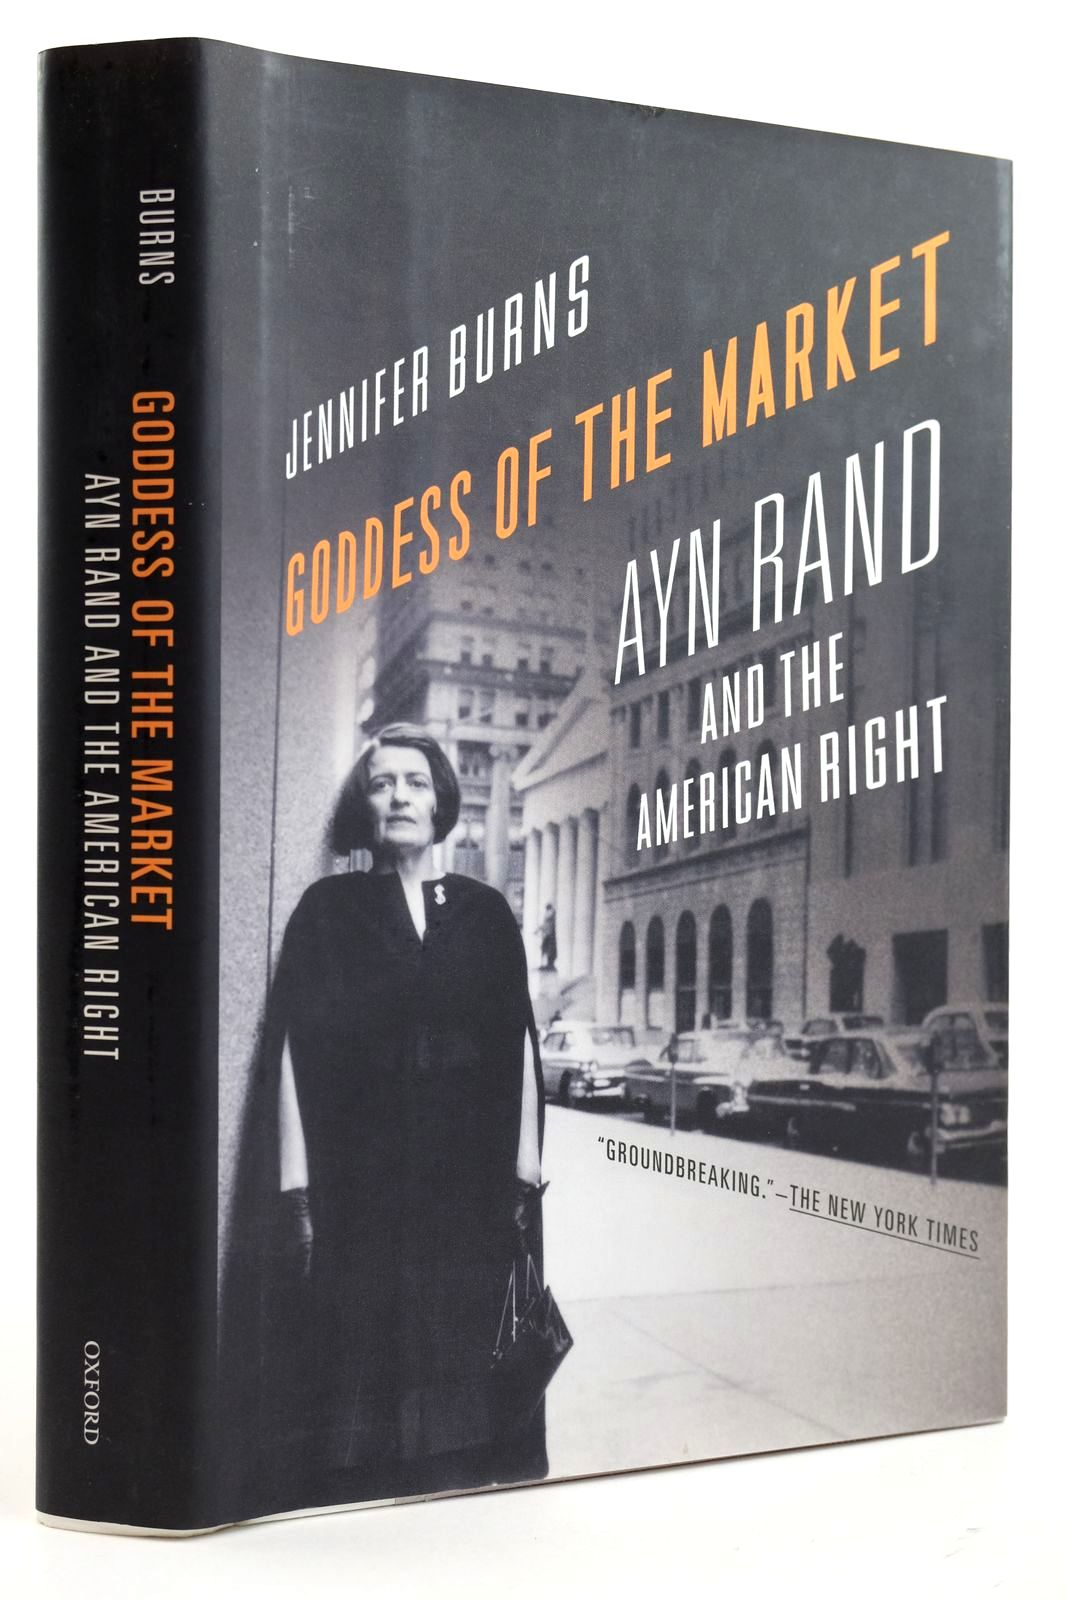 Photo of GODDESS OF THE MARKET AYN RAND AND THE AMERICAN RIGHT written by Burns, Jennifer published by Oxford University Press (STOCK CODE: 2132513)  for sale by Stella & Rose's Books